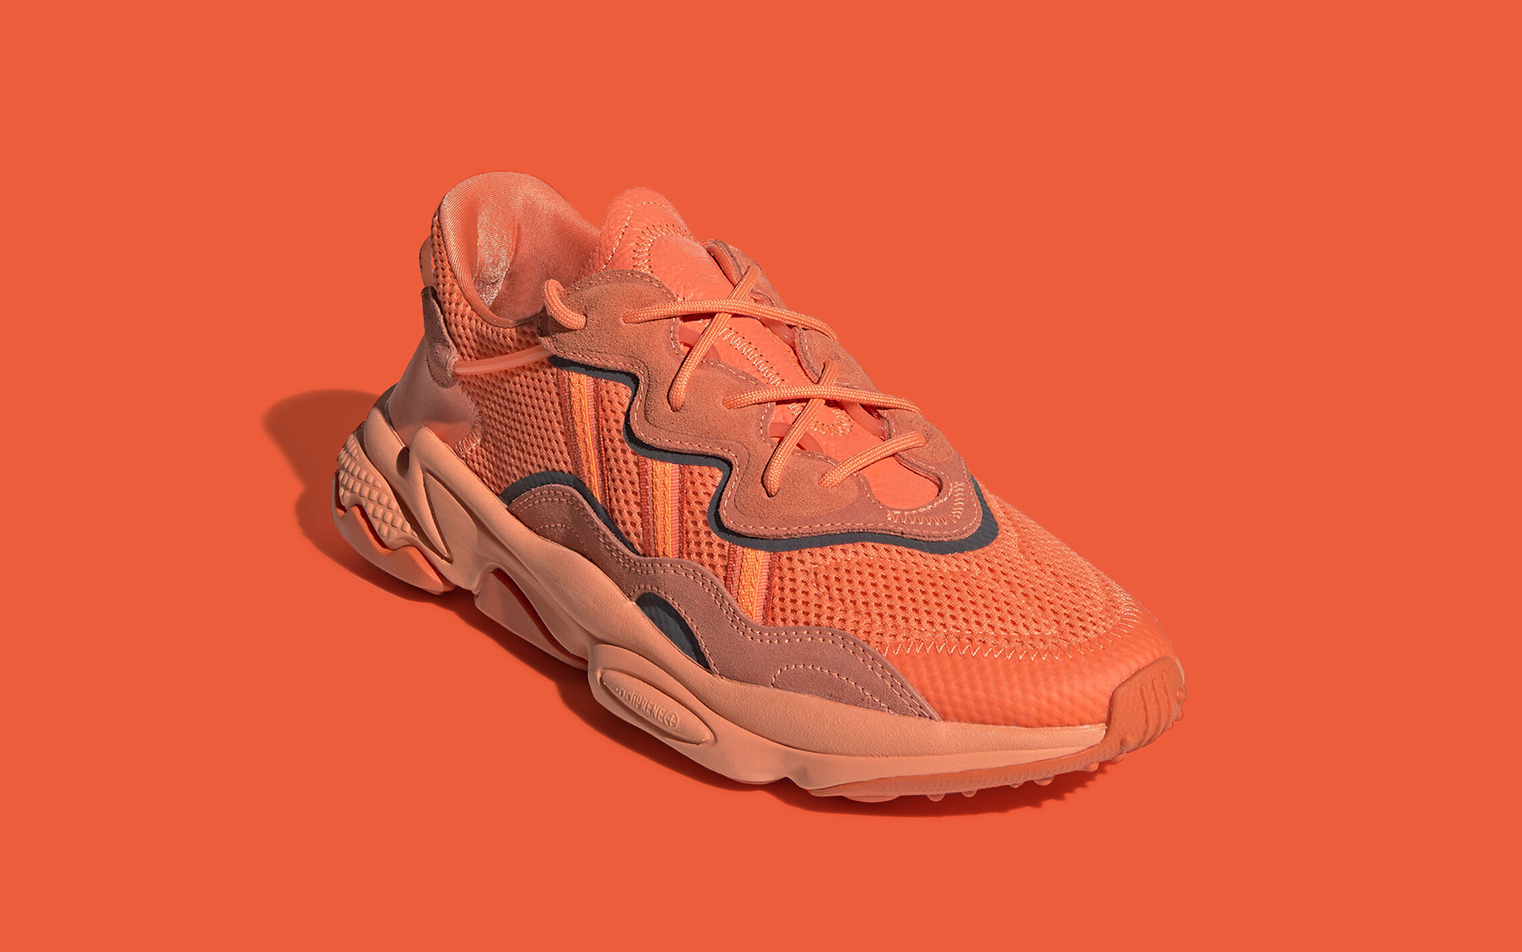 All-Orange Ozweegos are On the Way